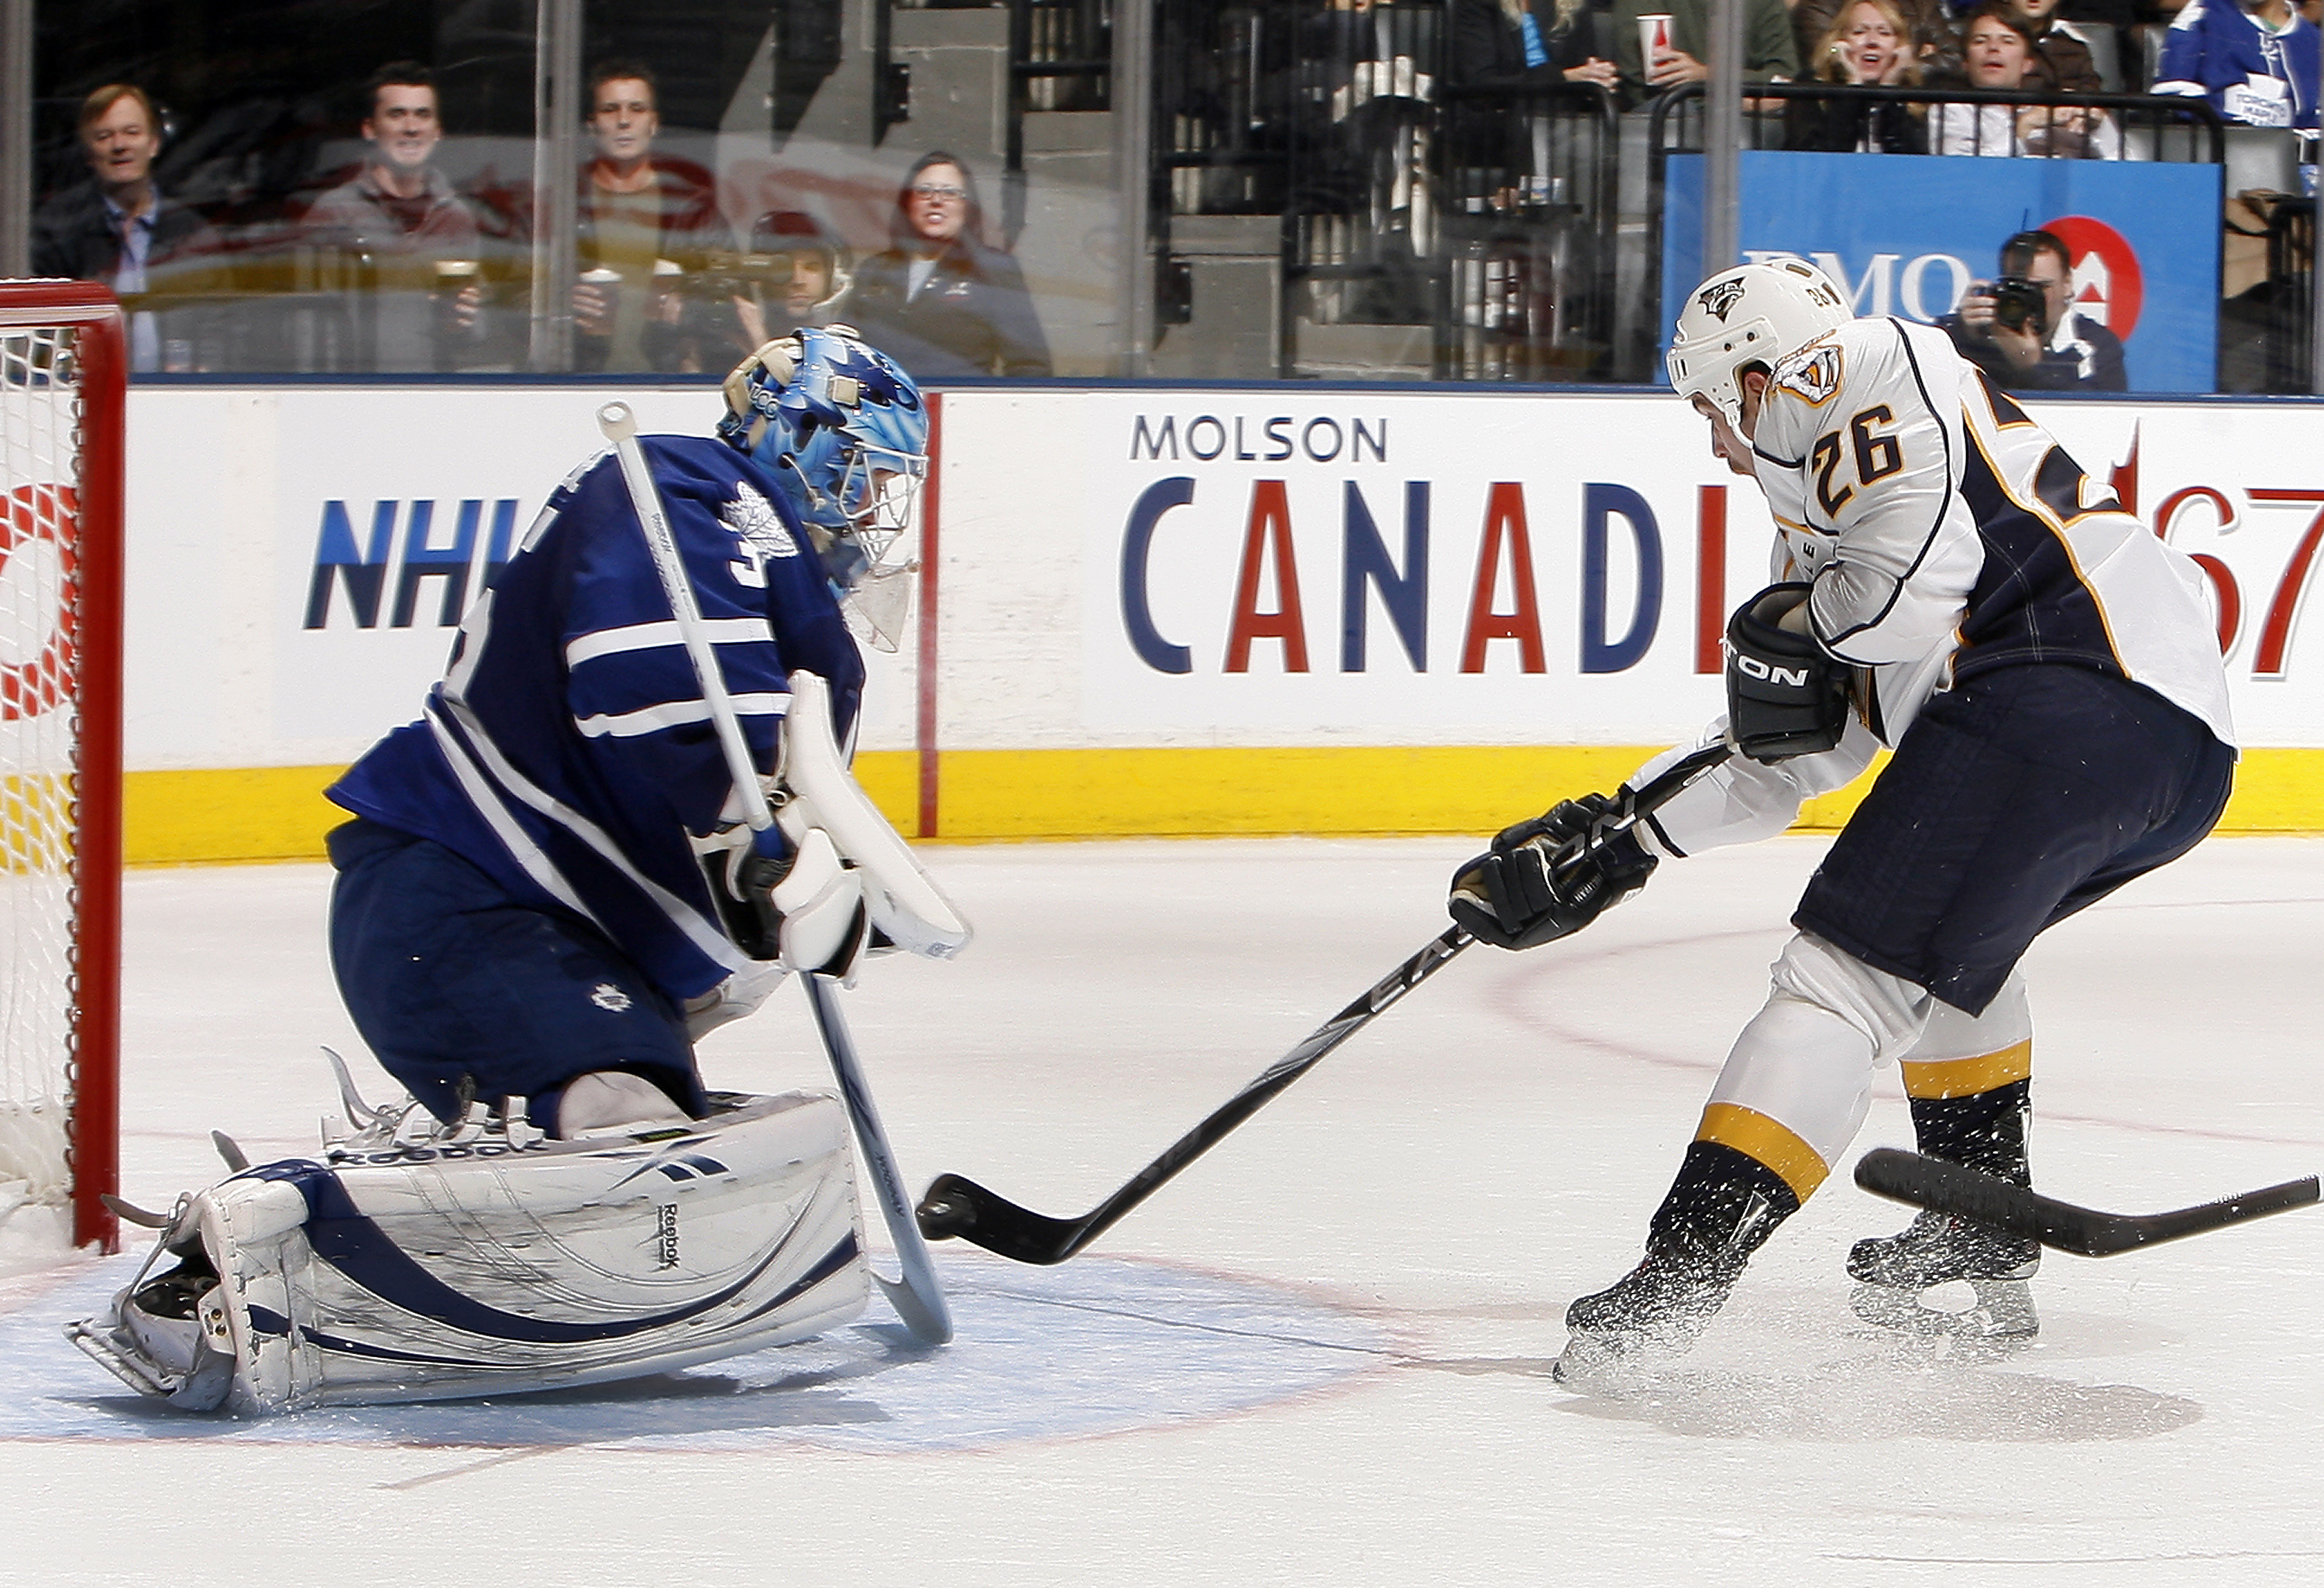 TORONTO - NOVEMBER 16: Jean-Sebastien Giguere #35 of the Toronto Maple Leafs makes a save on Steve Sullivan #26 of the Nashville Predators during game action at the Air Canada Centre November 16, 2010 in Toronto, Ontario, Canada. (Photo by Abelimages/Gett